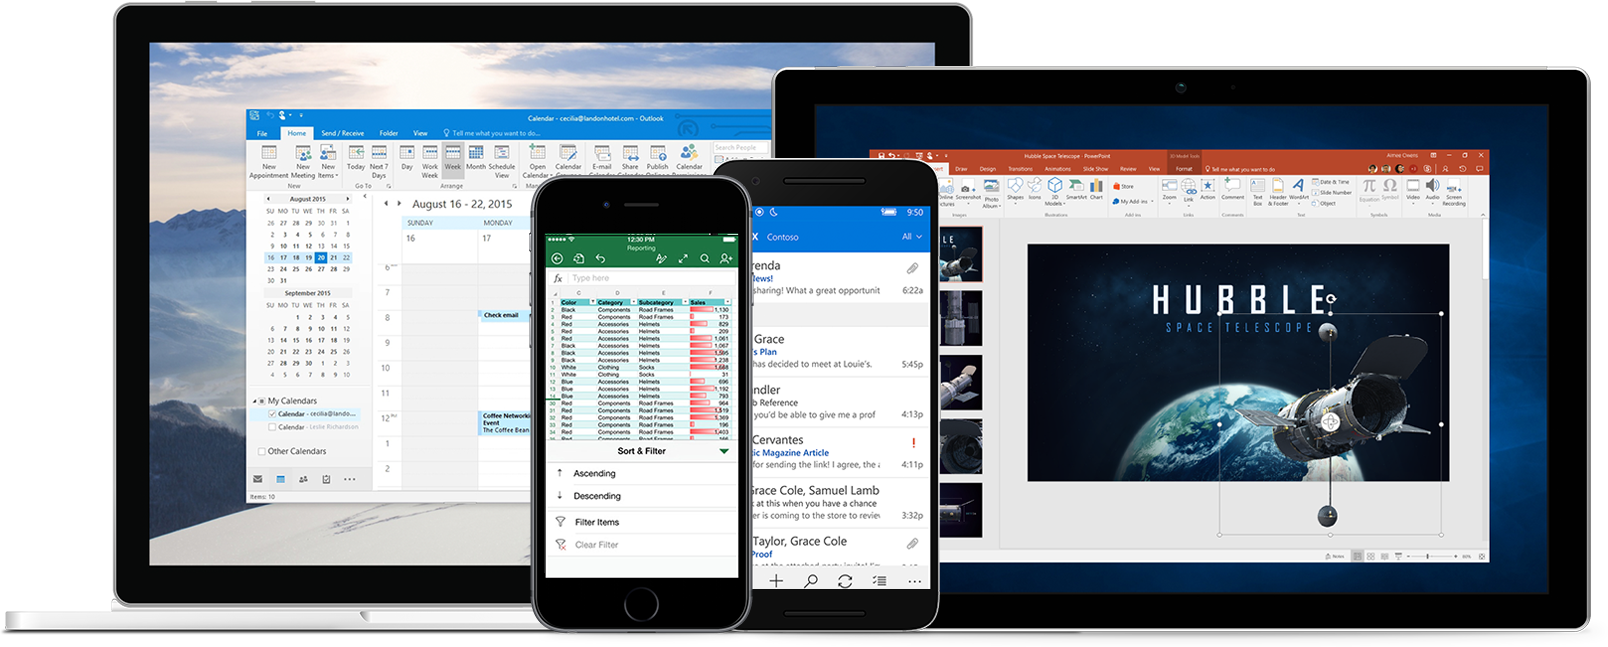 Microsoft office 365 free download for pc